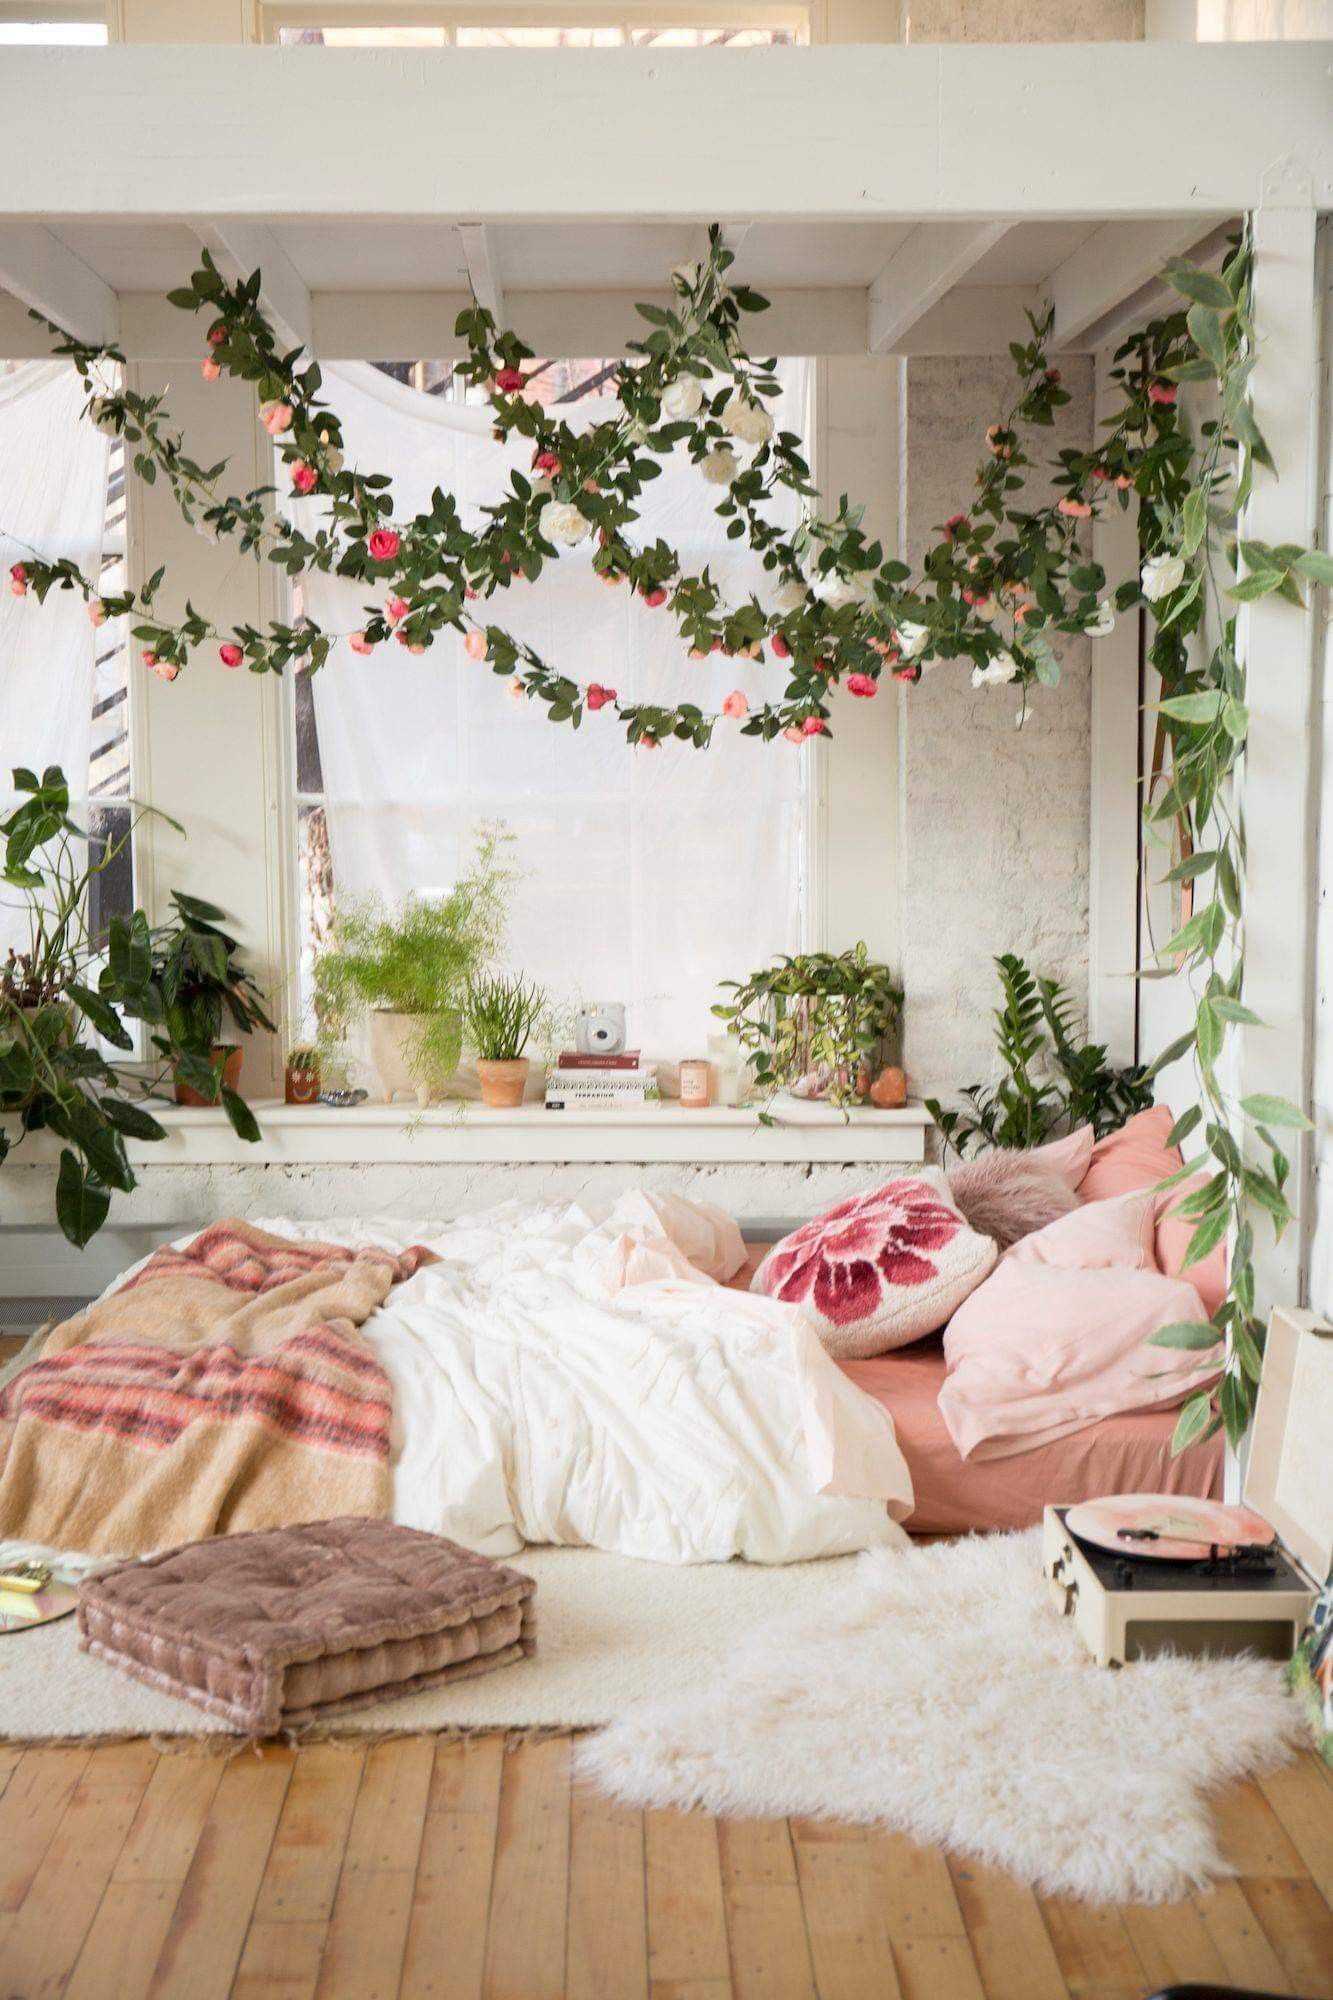 Pinterest Sharrstyles Romantic Bedroom Decor Pink Bedroom Decor Bedroom Decor Cozy